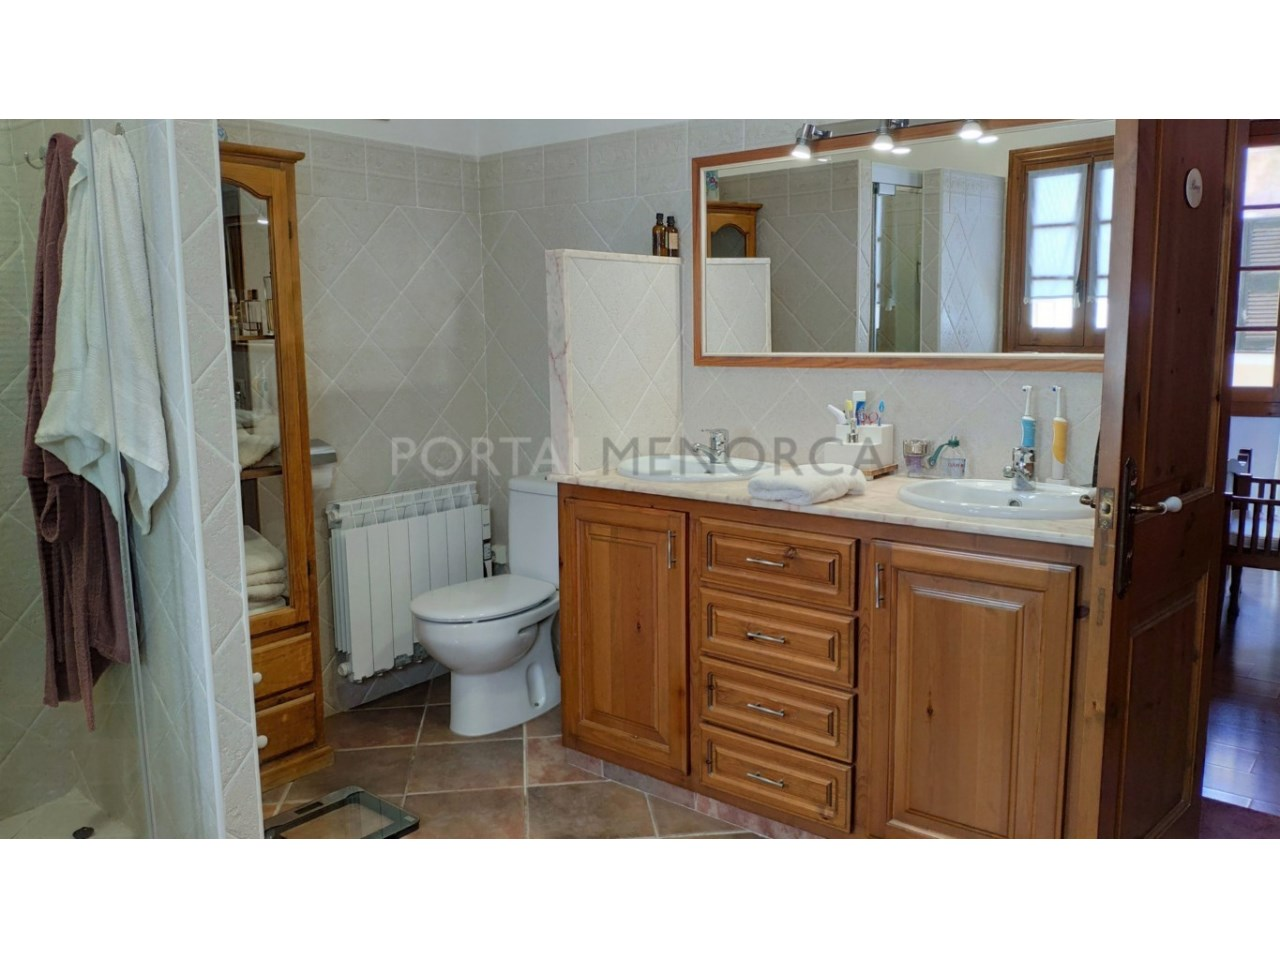 House for sale in the old town of Ciutadella-Bathroom